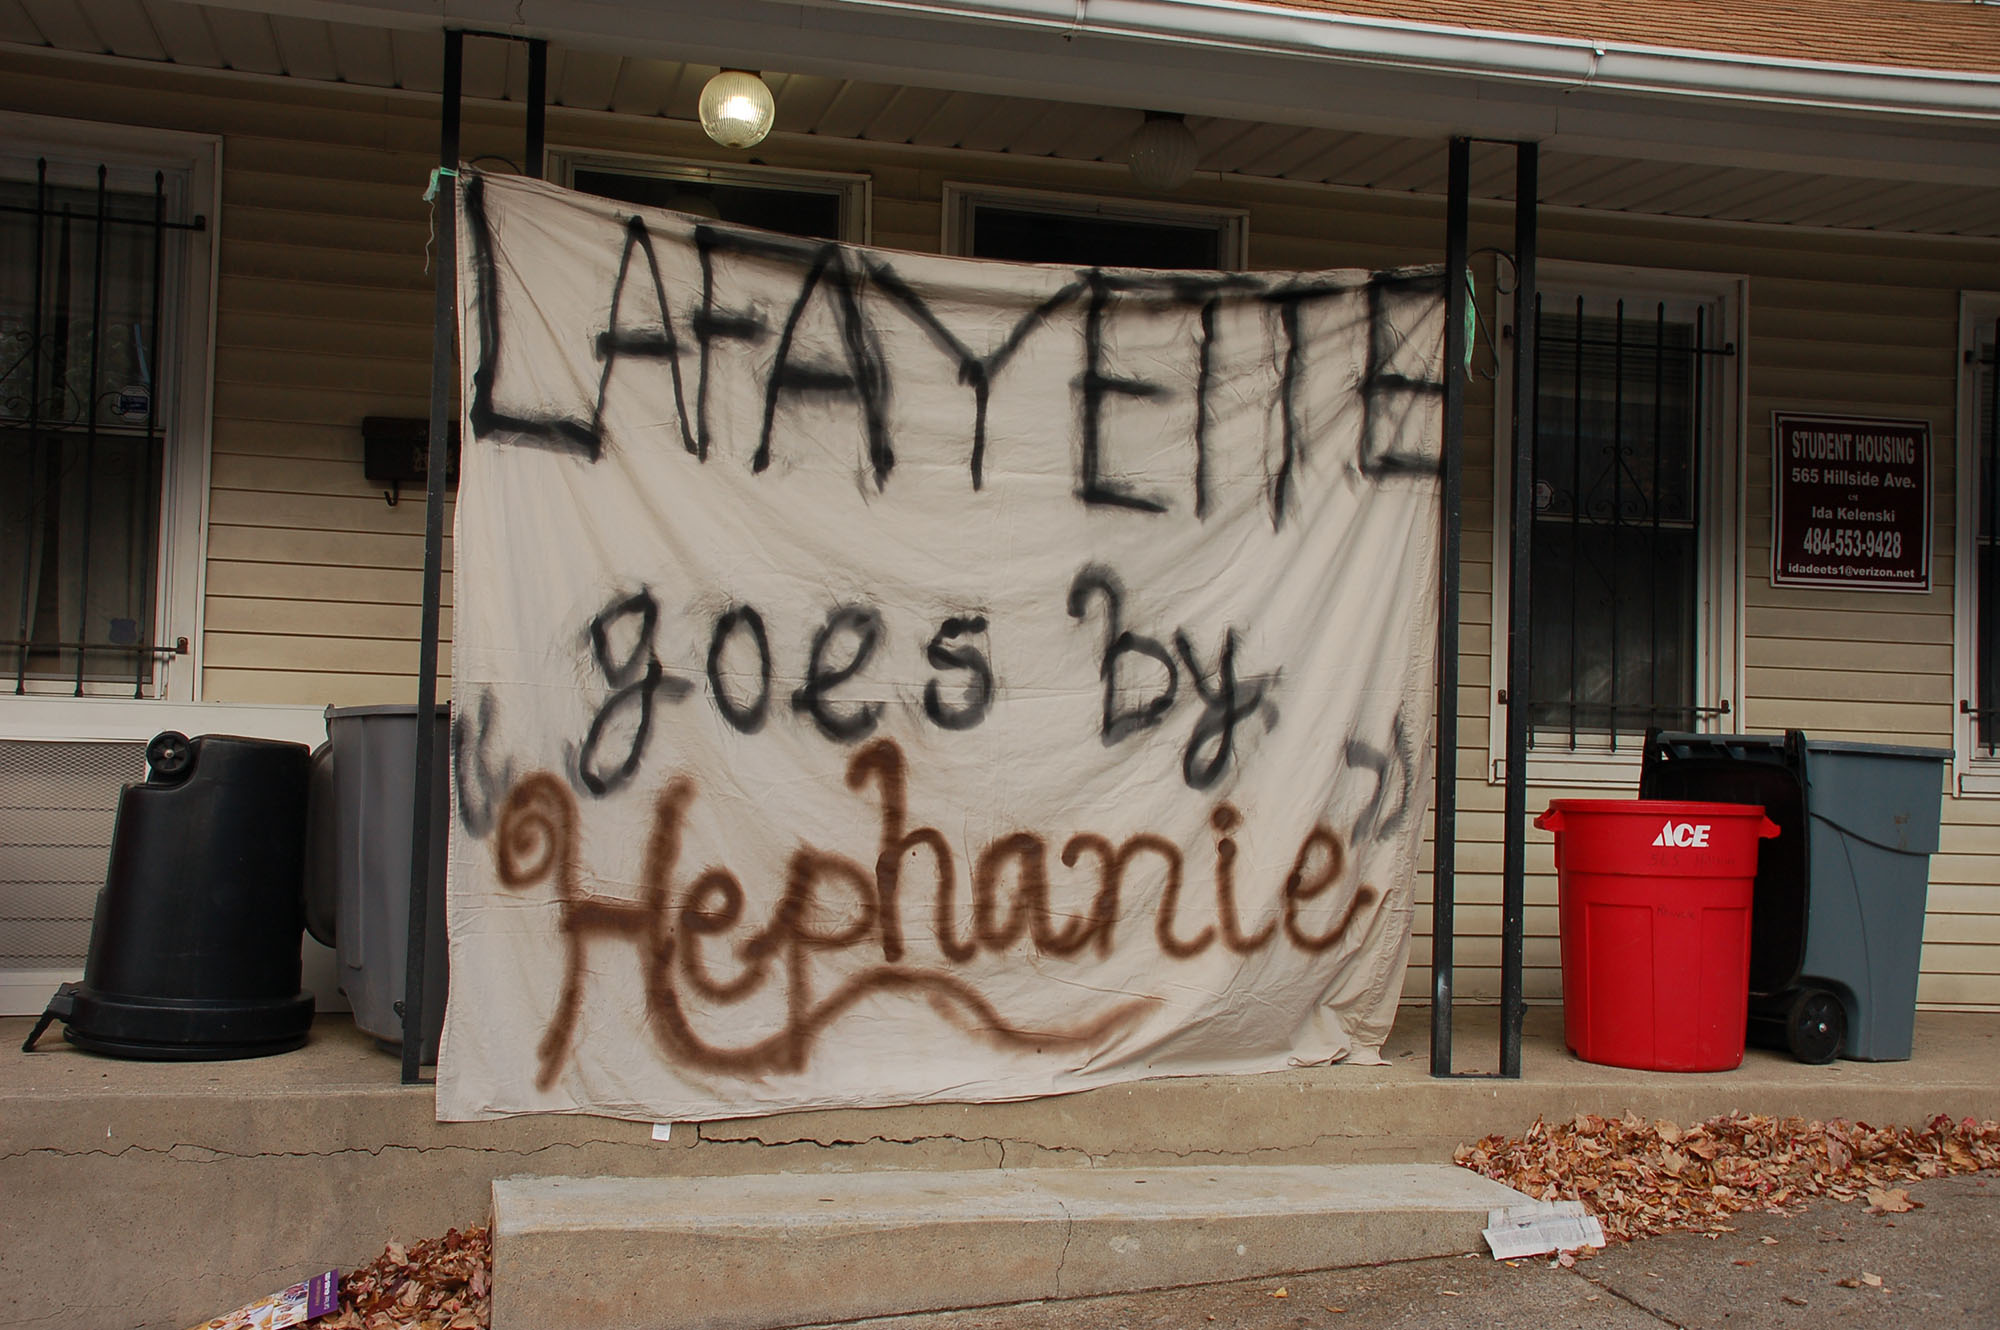 "A sign reading ""Lafayette goes by 'Hephanie'"" hangs on a house on Hillside Avenue on Nov. 15, 2016. Lehigh students celebrate Lehigh-Lafayette week in the days leading up to the rivalry football game. (Samantha Tomaszewski/B&W Staff)"